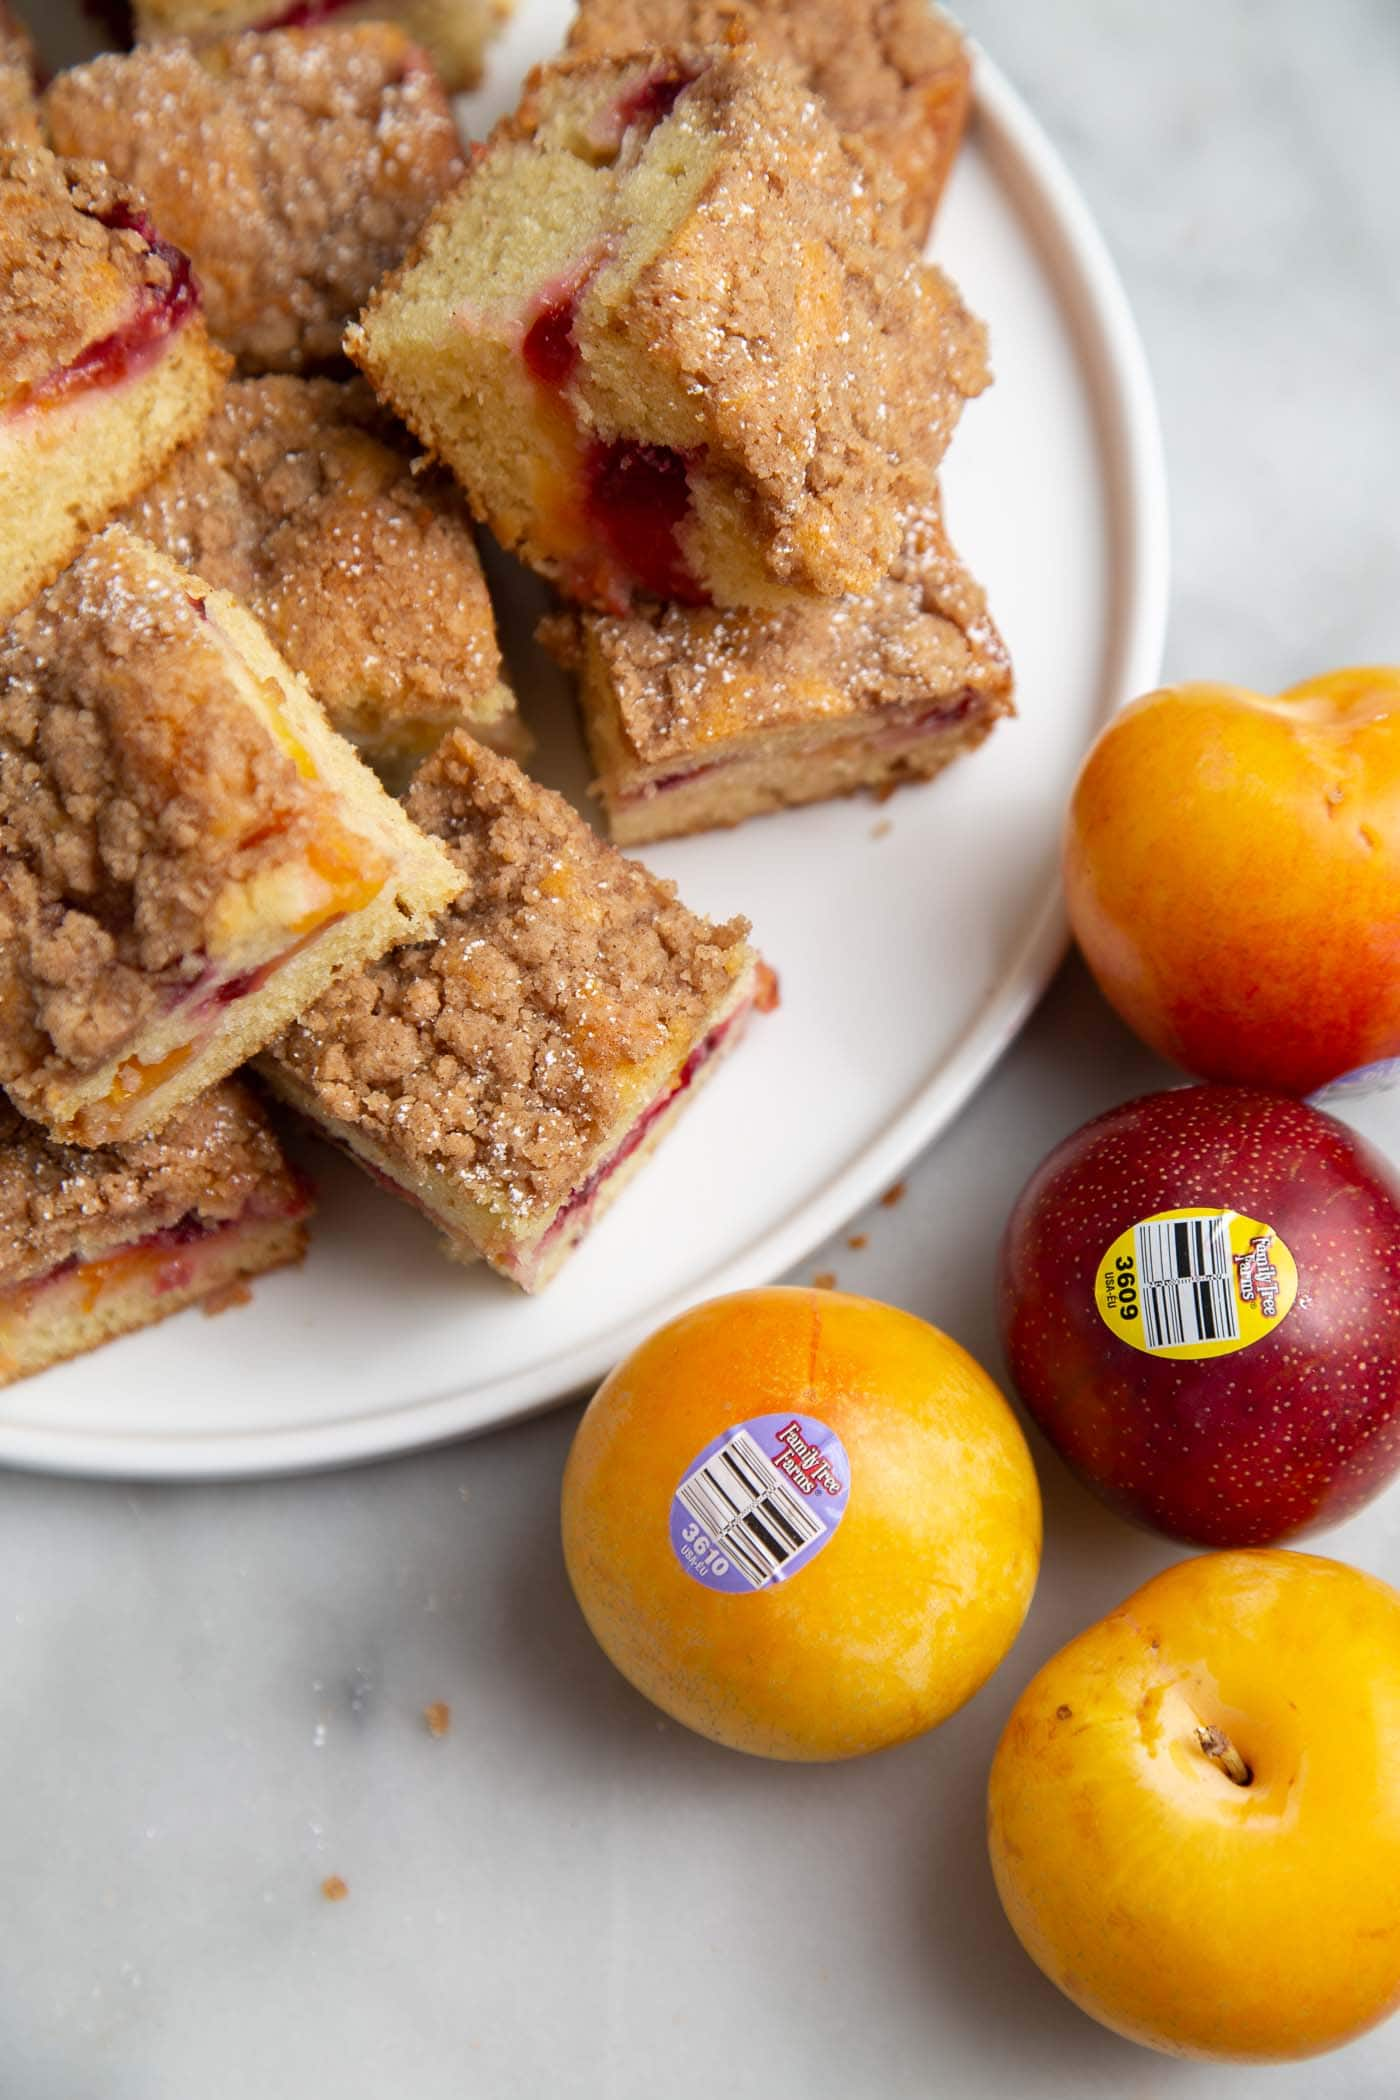 Plumcot Crumb Cake featuring vanilla cake with sliced plumcots and spiced crumble topping